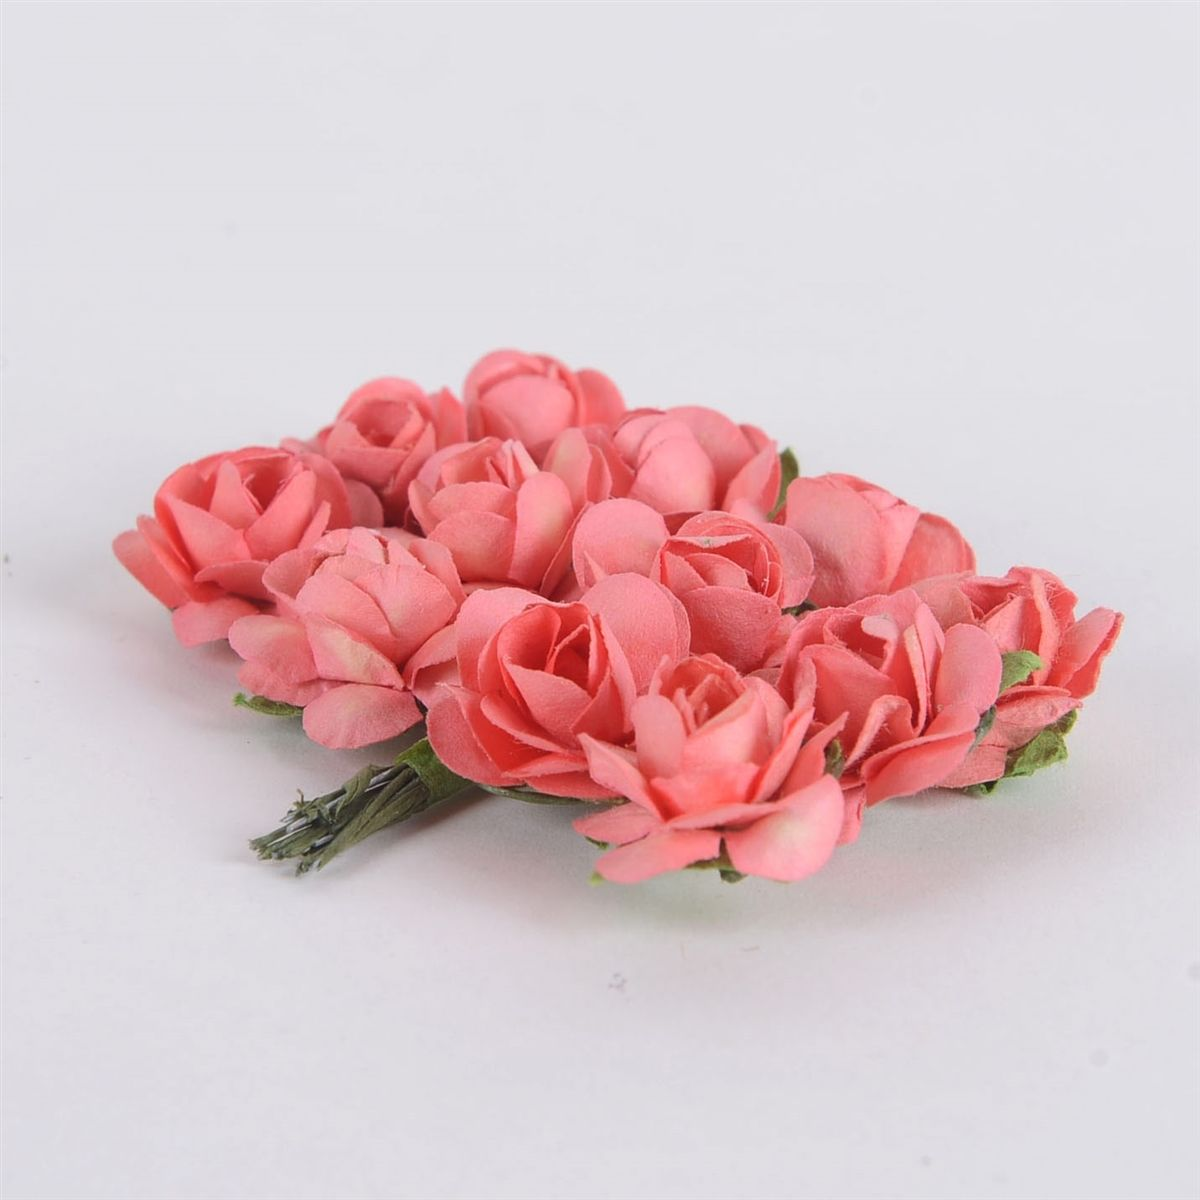 Fuzzy Fabric Affords Topnotch Quality Rose Paper Flowers By 12 12